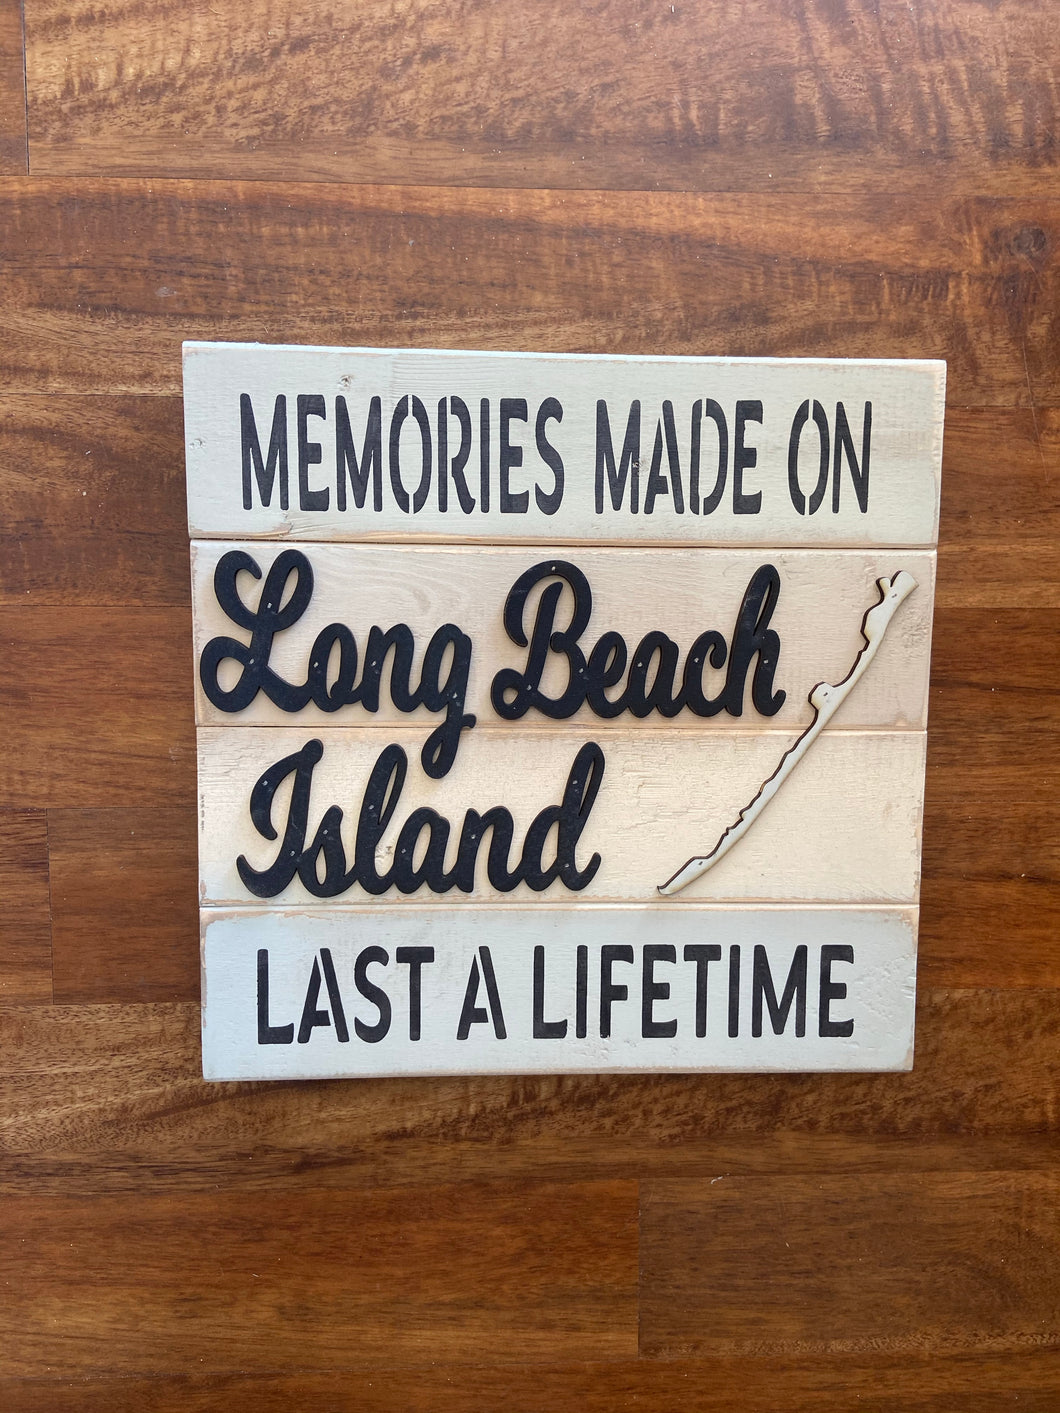 Memories on Long Beach Island